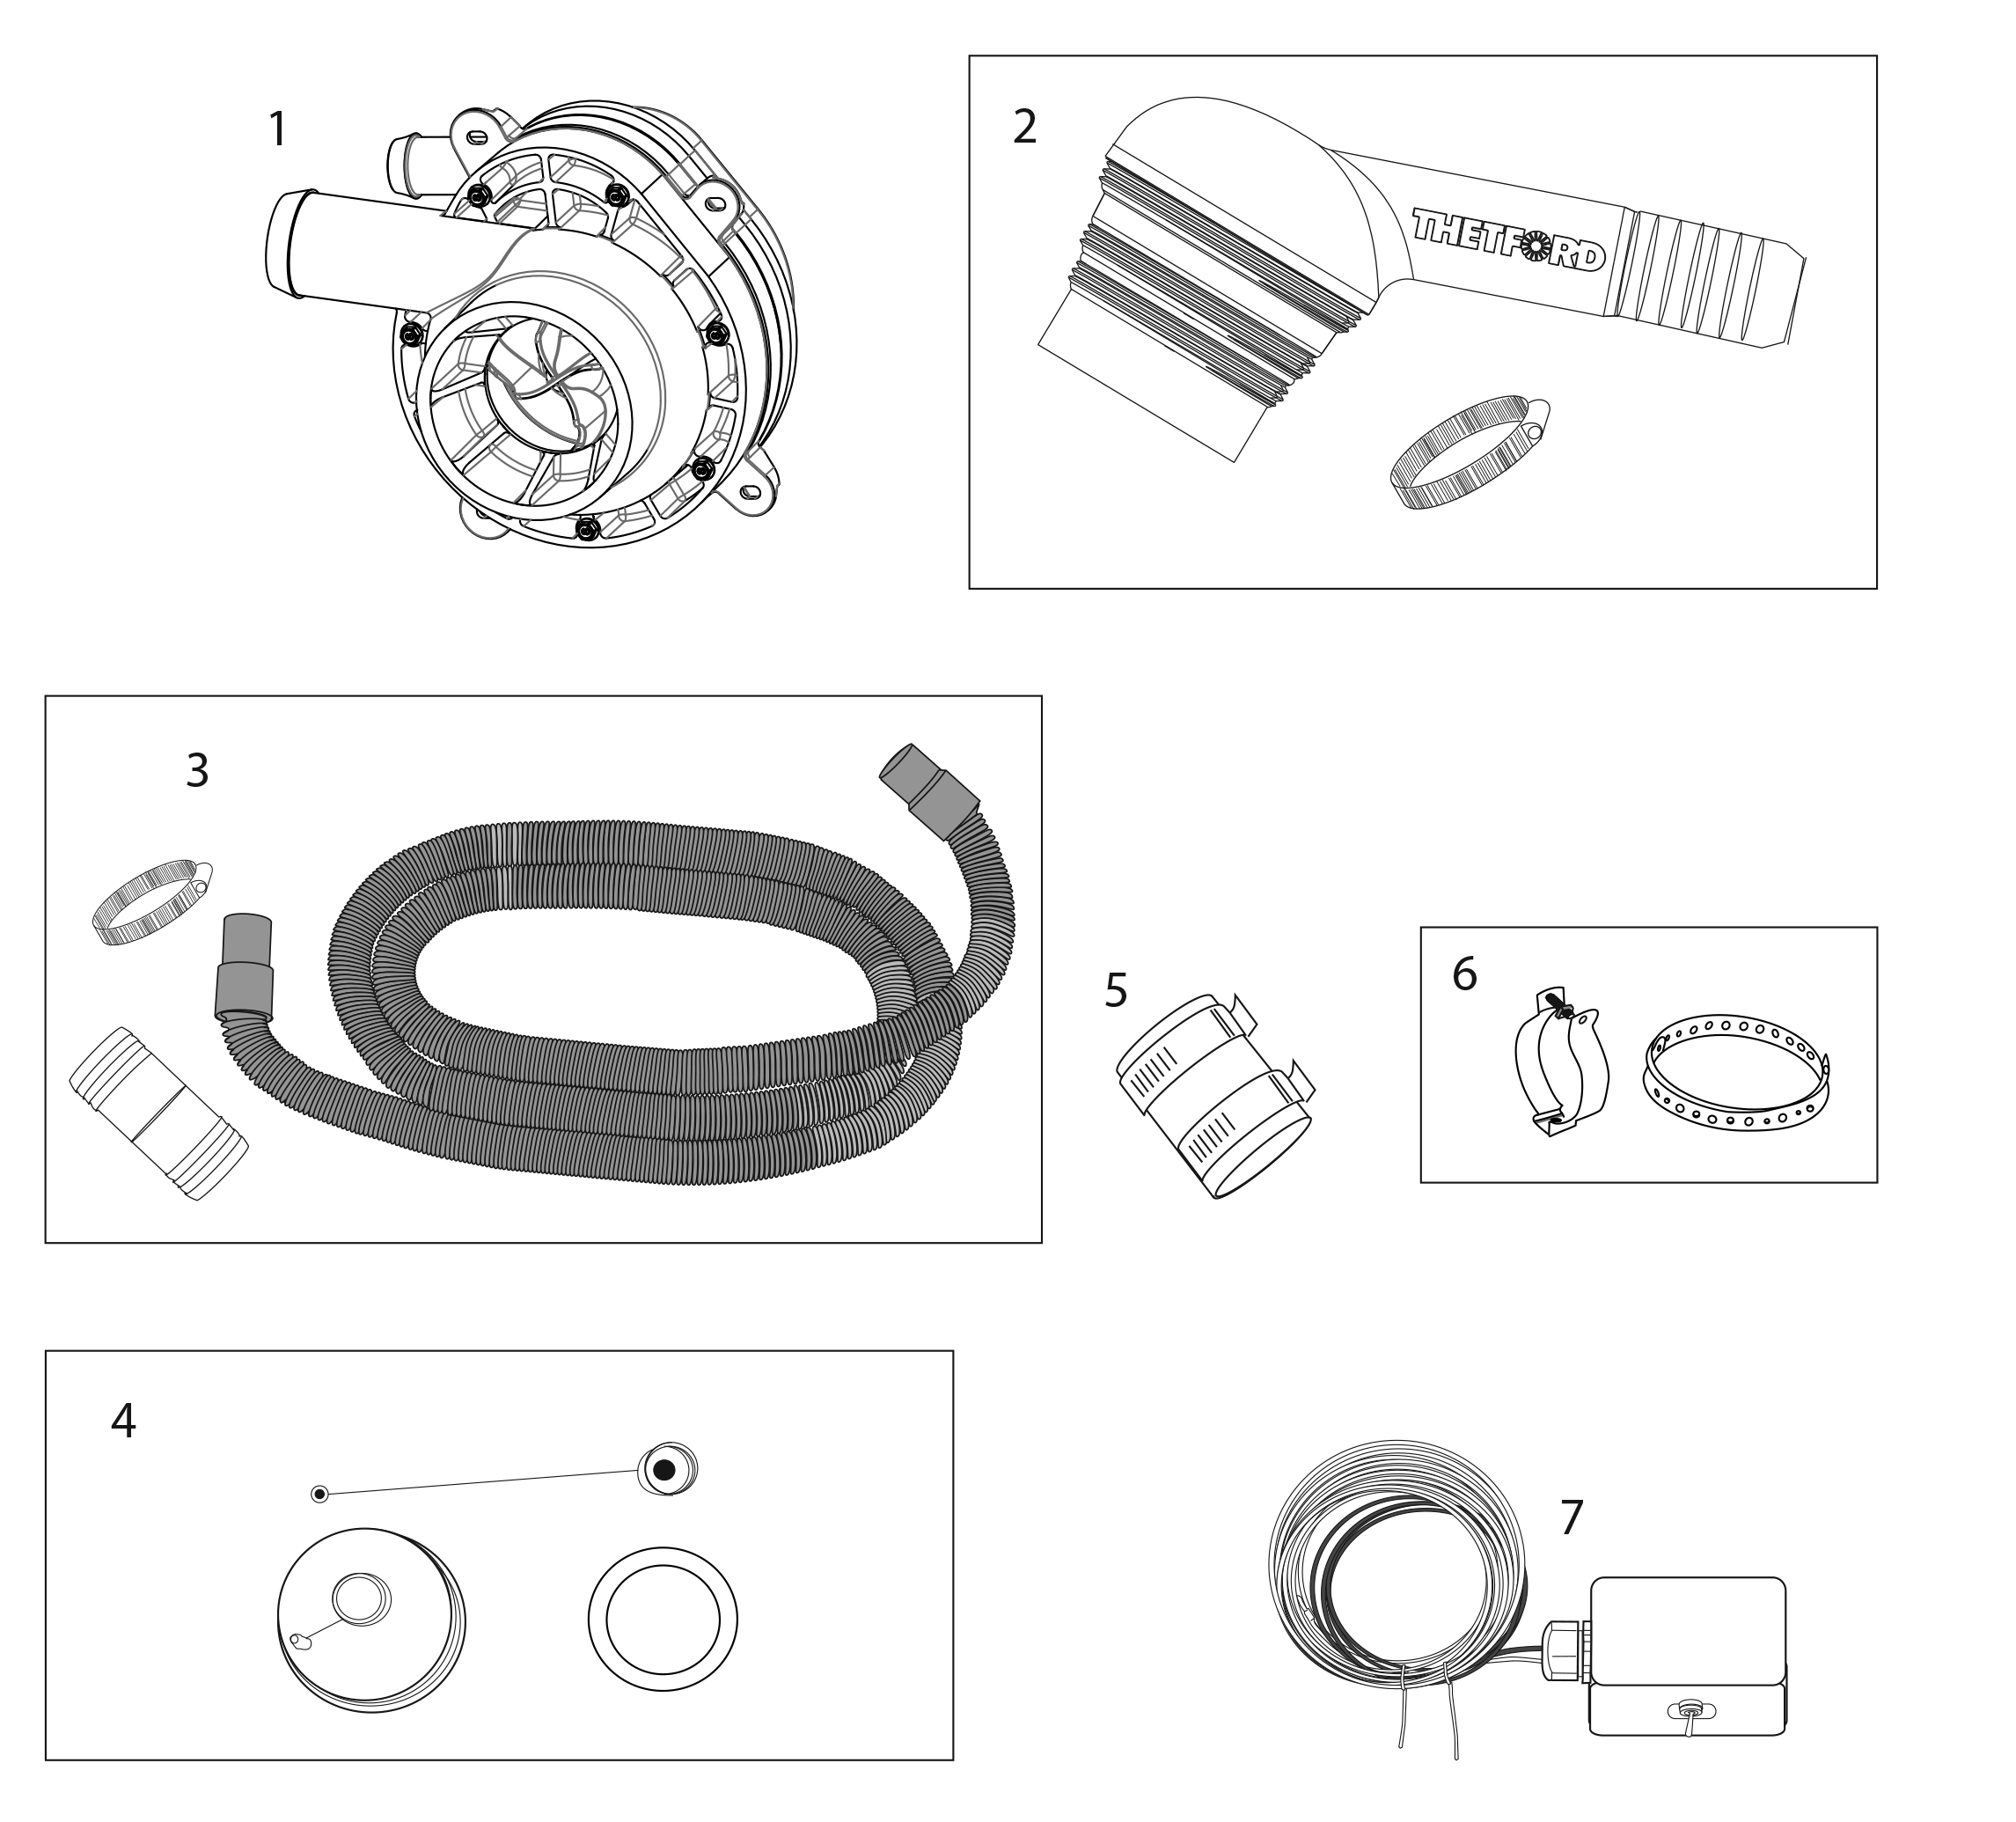 isuzu npr front brake diagram